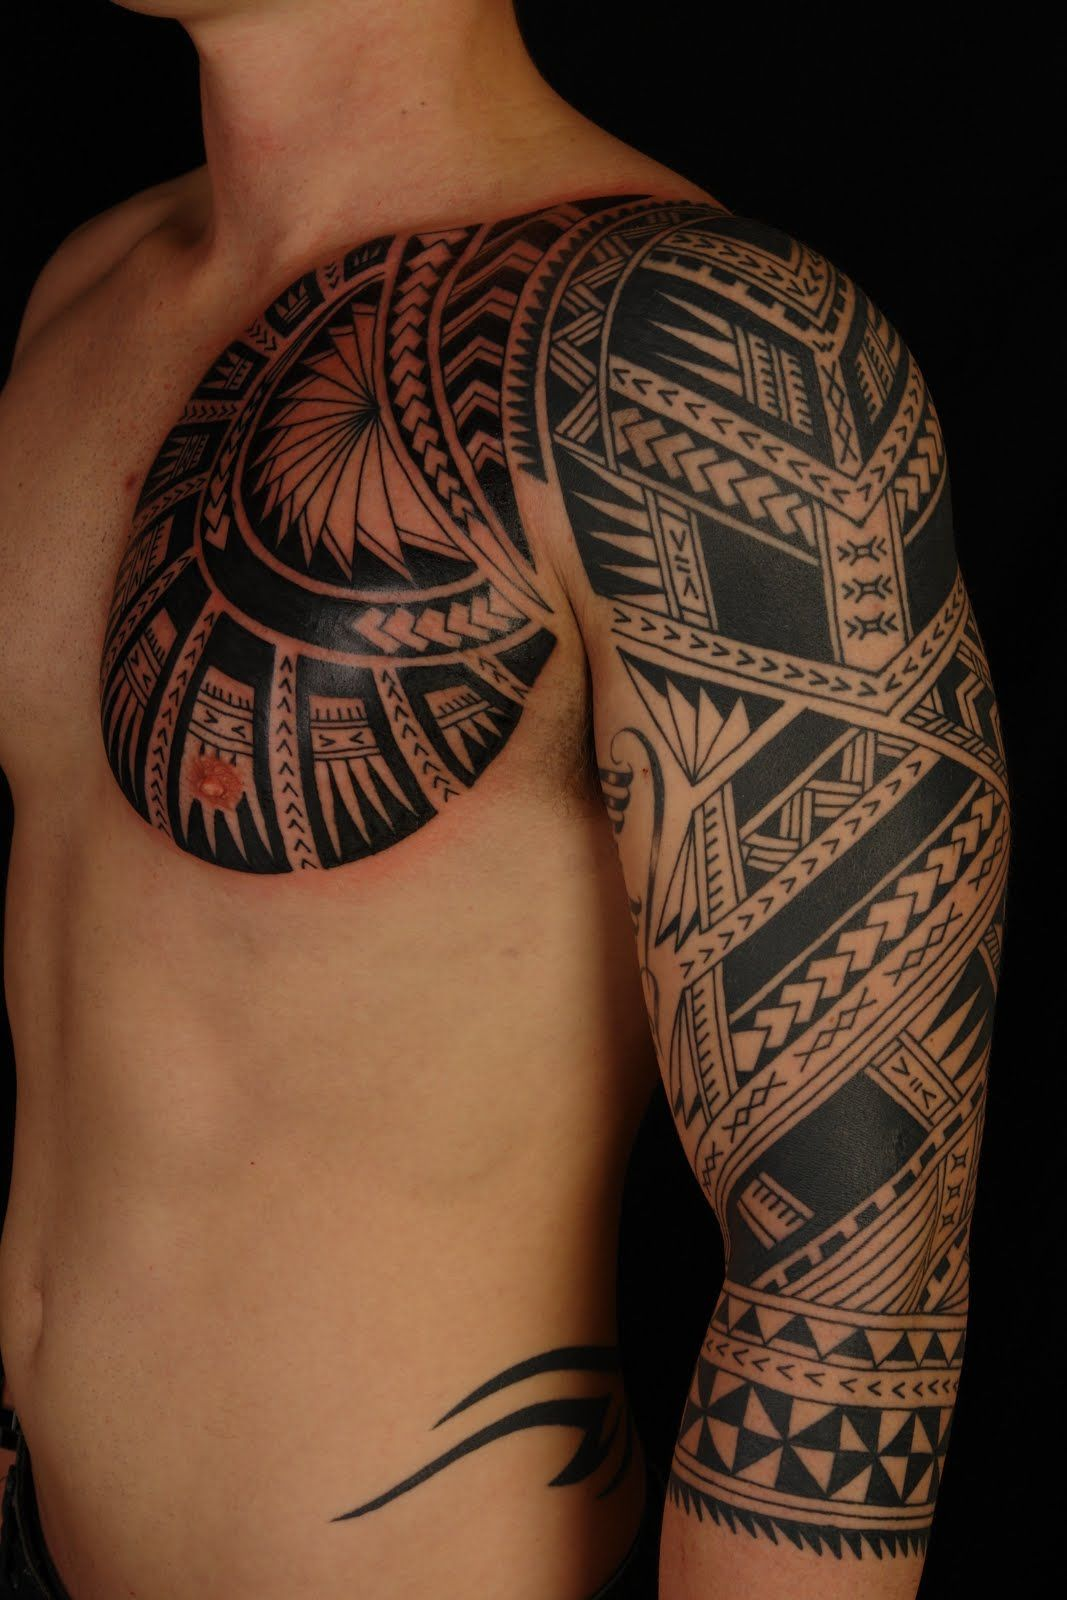 Polynesian tattoo designs cool ideas designs - Pin Maori Polynesian Tattoo Chest Extention On Cameron Picture To